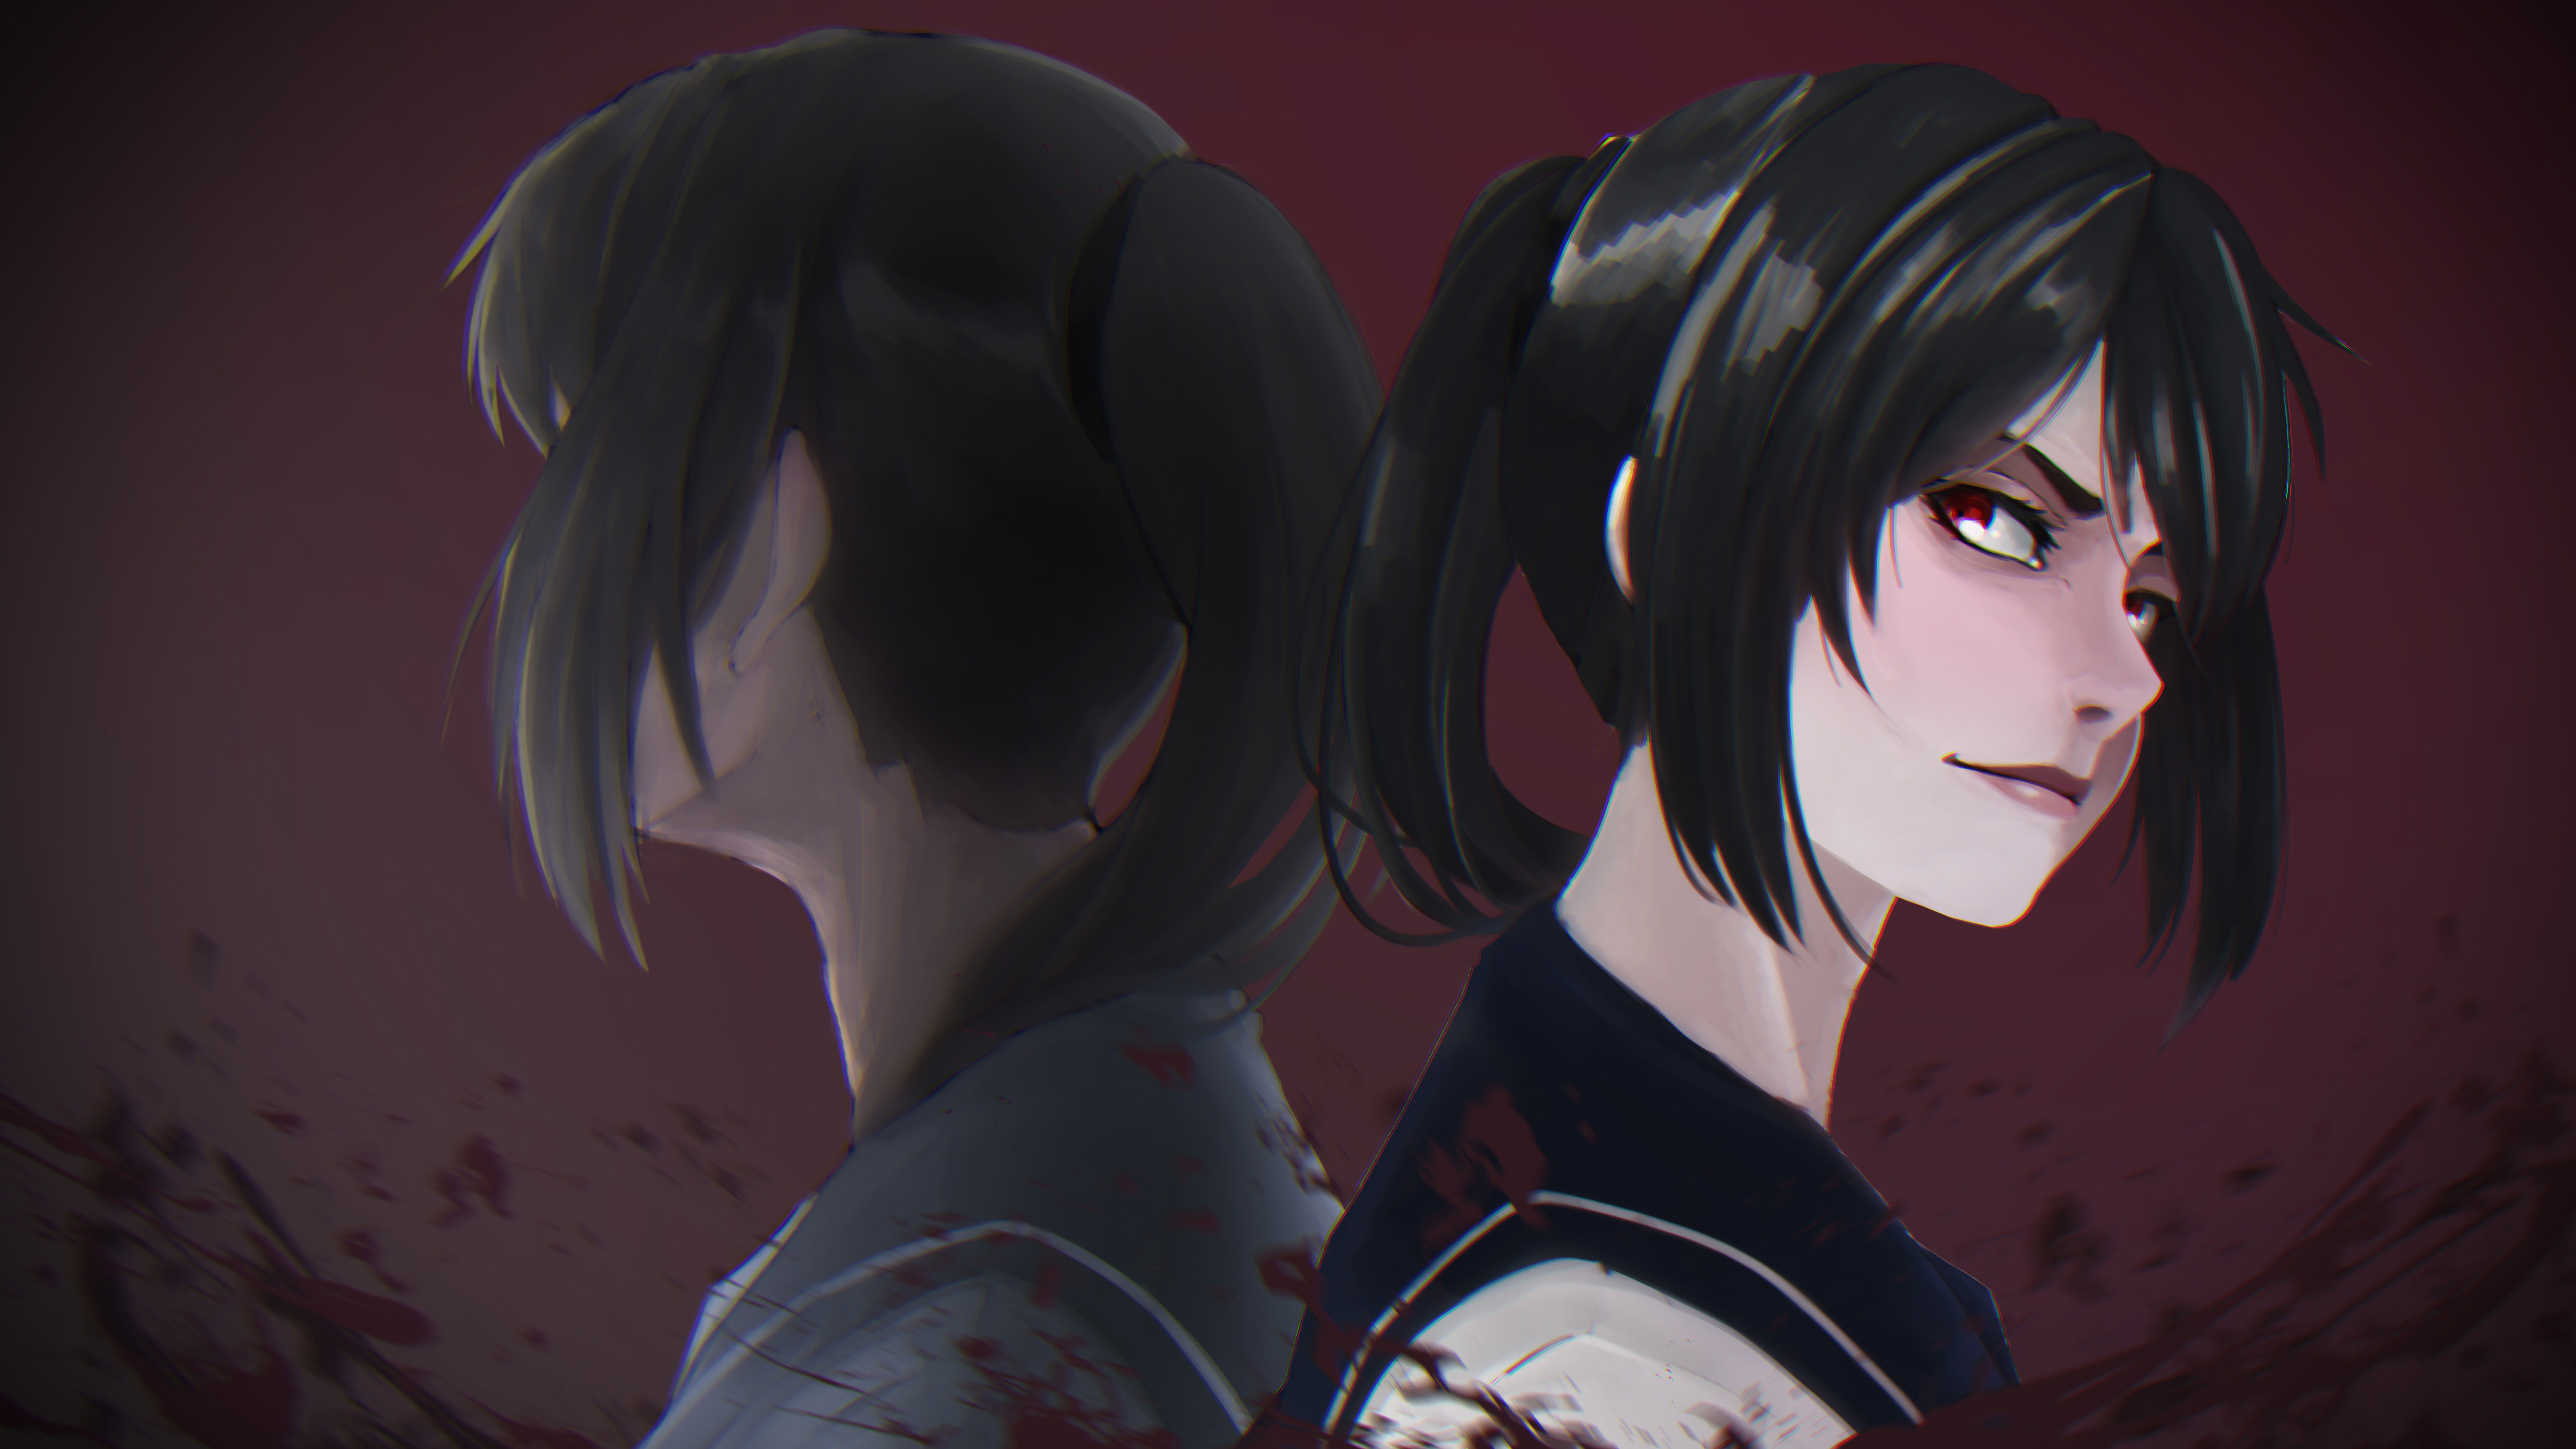 Yandere chan 5k hd anime 4k wallpapers images - 5k anime wallpaper ...